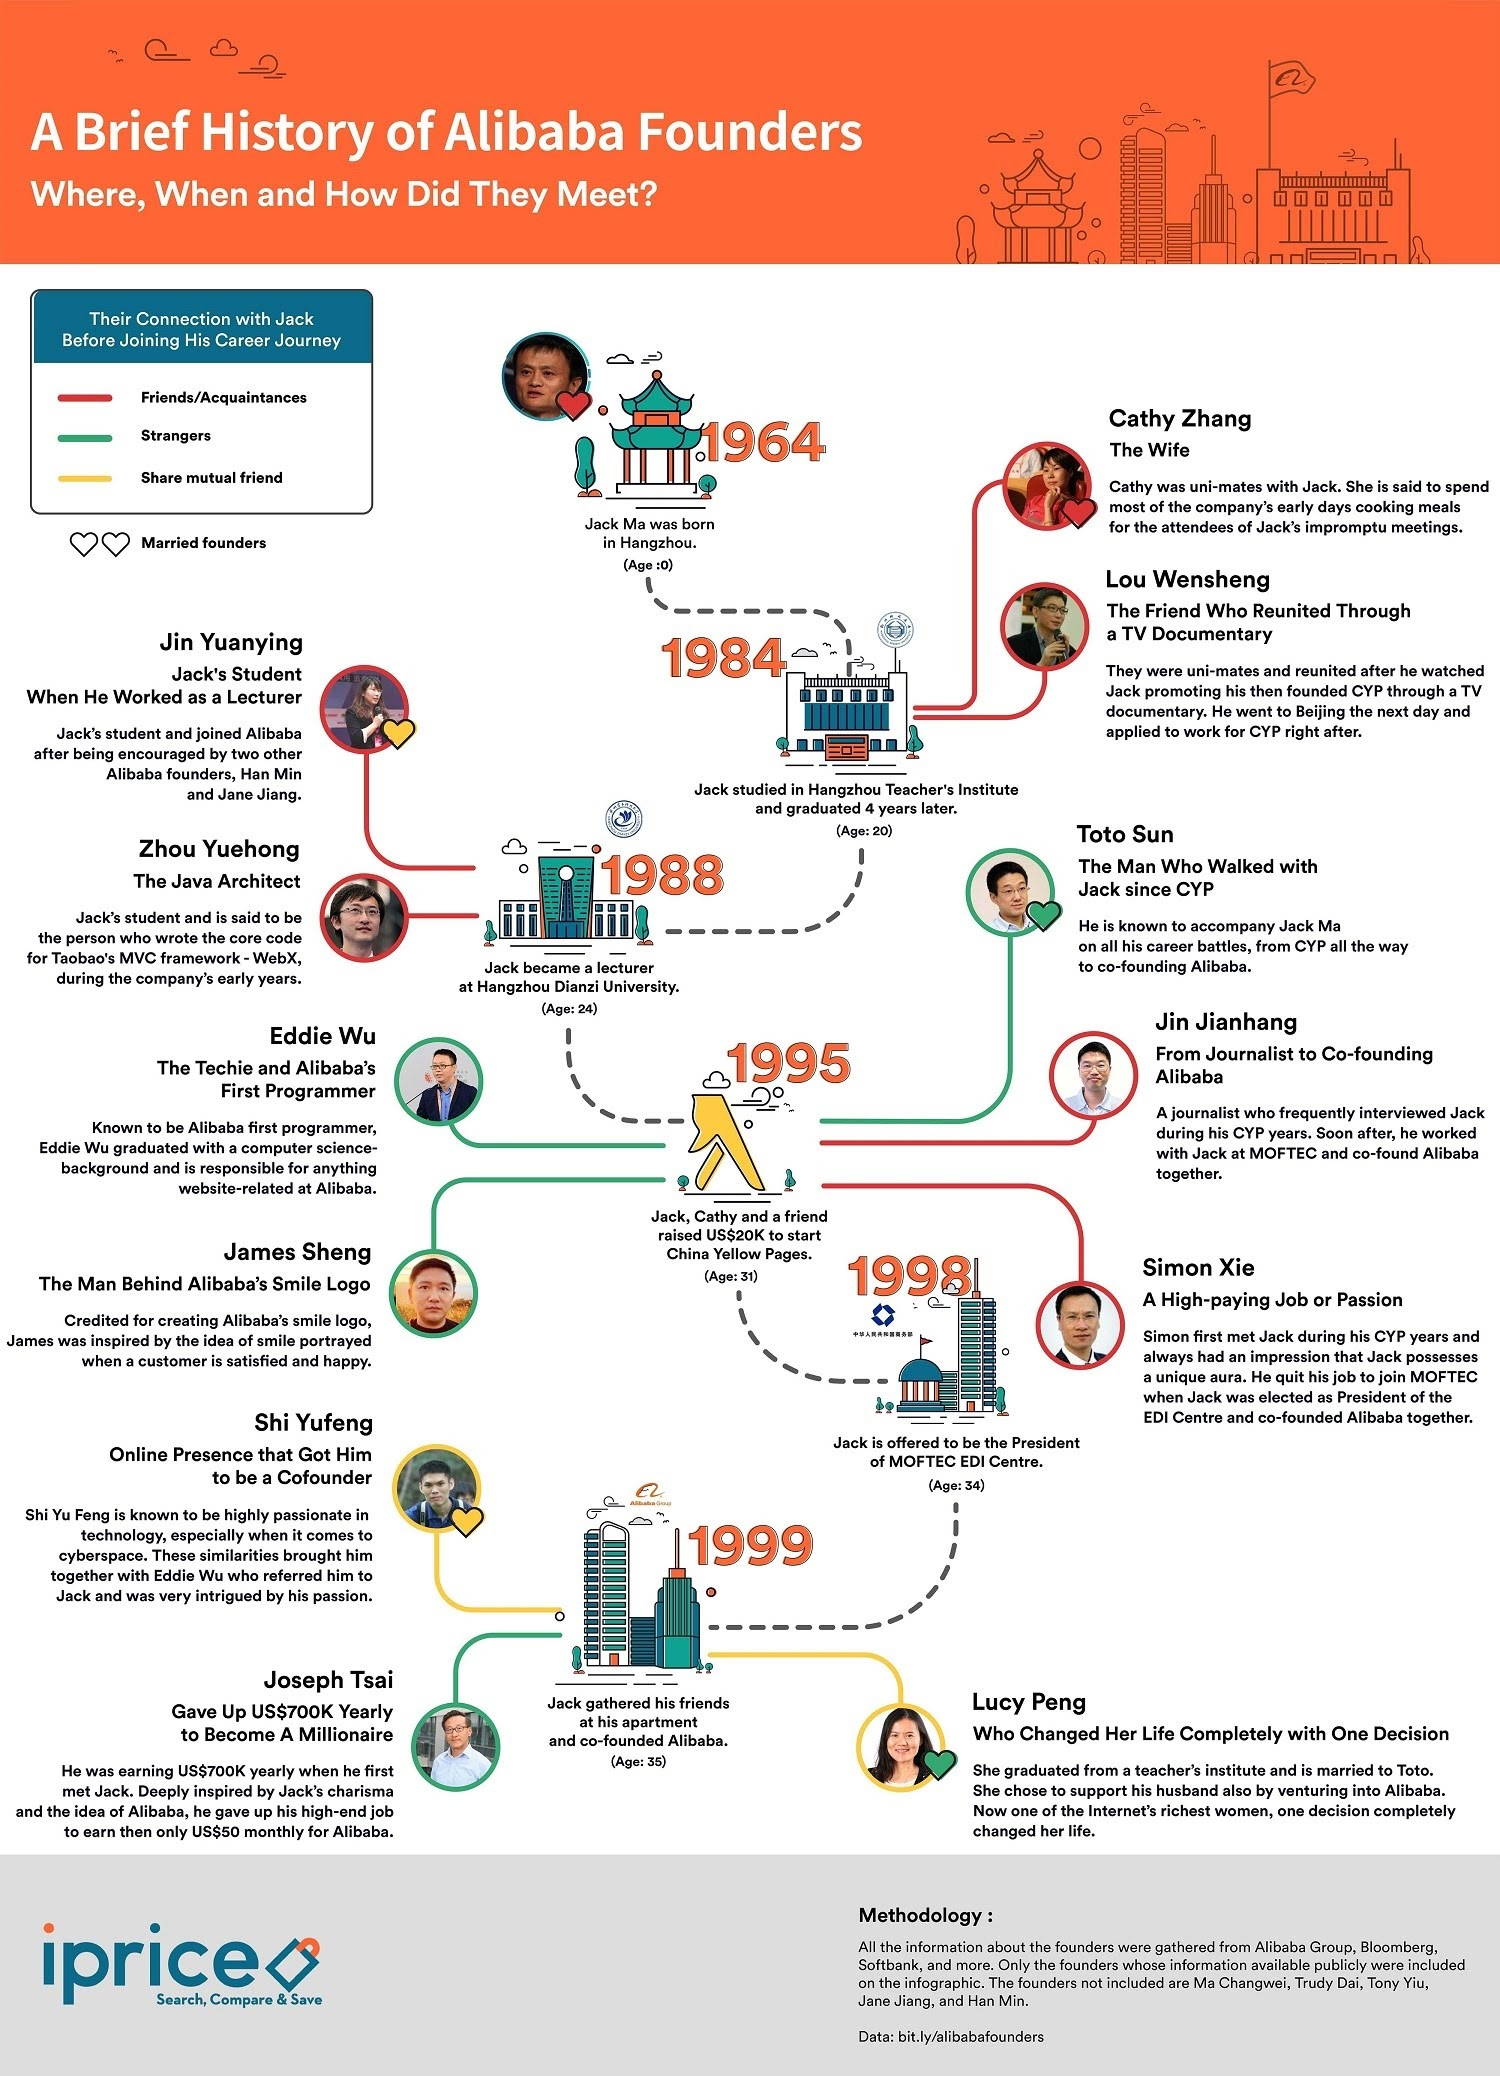 A Brief History of Alibaba Founders #Infographic